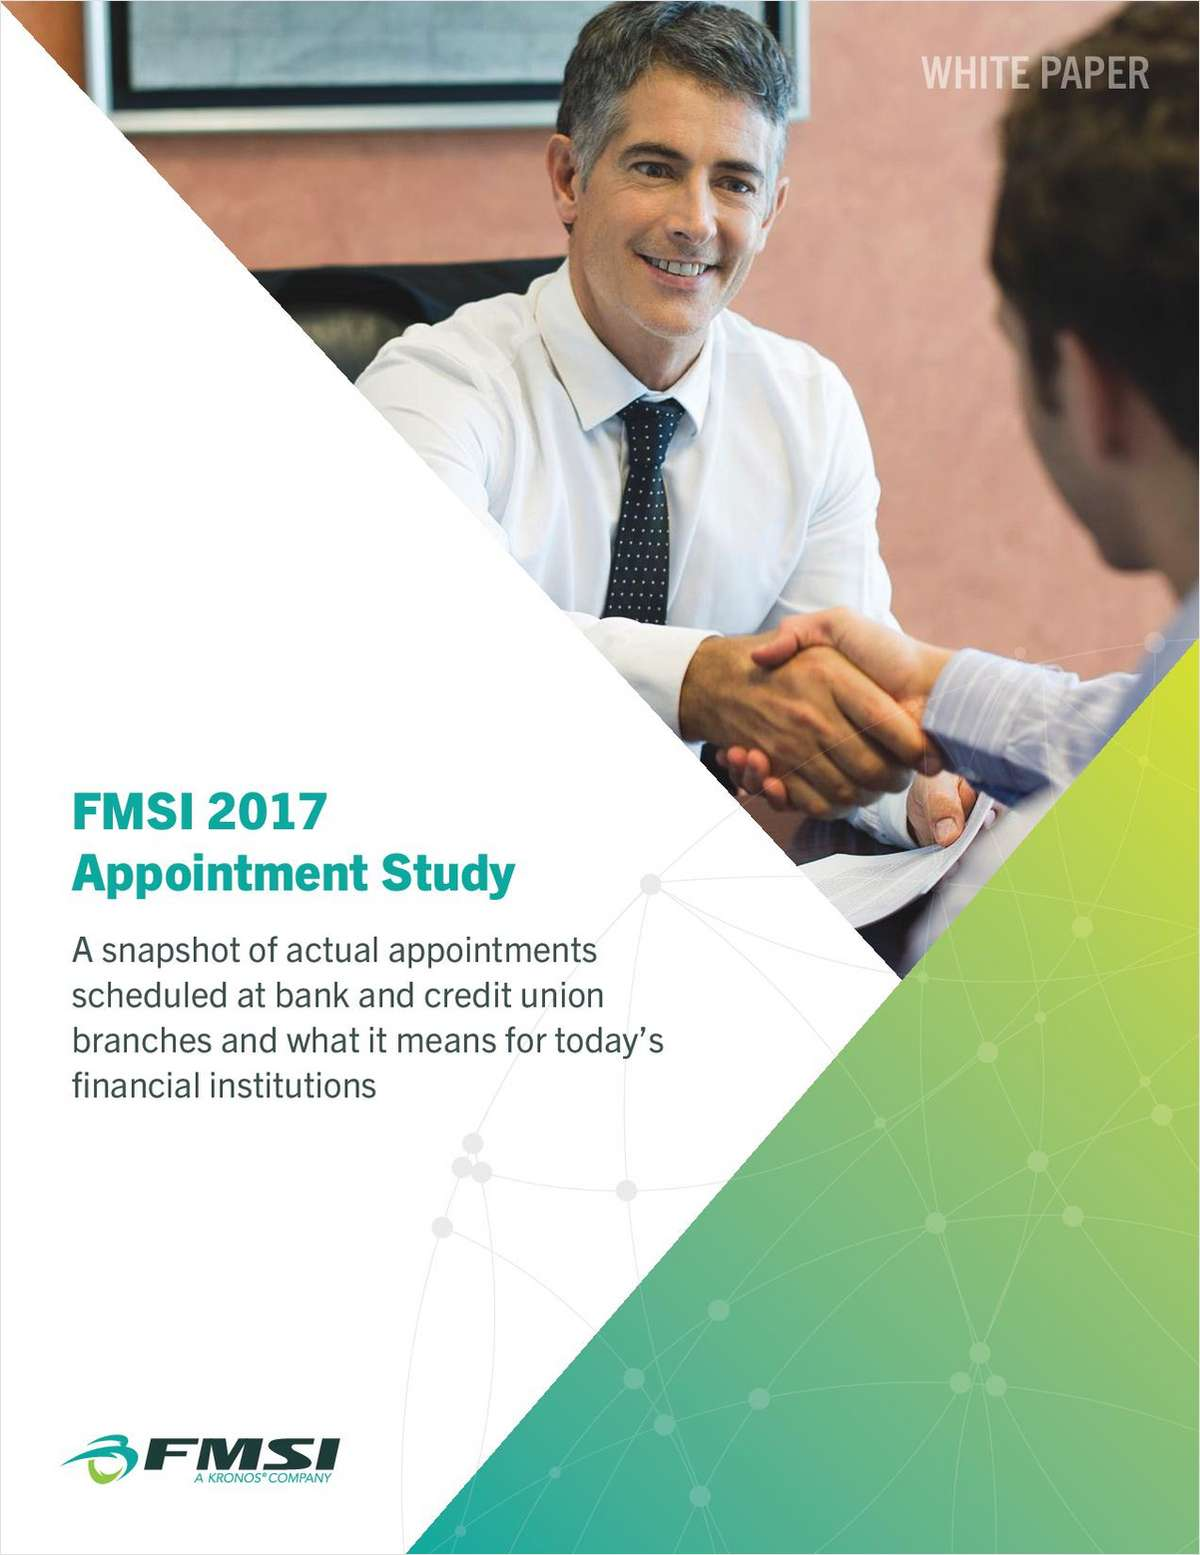 FMSI 2017 Appointment Study for Financial Institutions